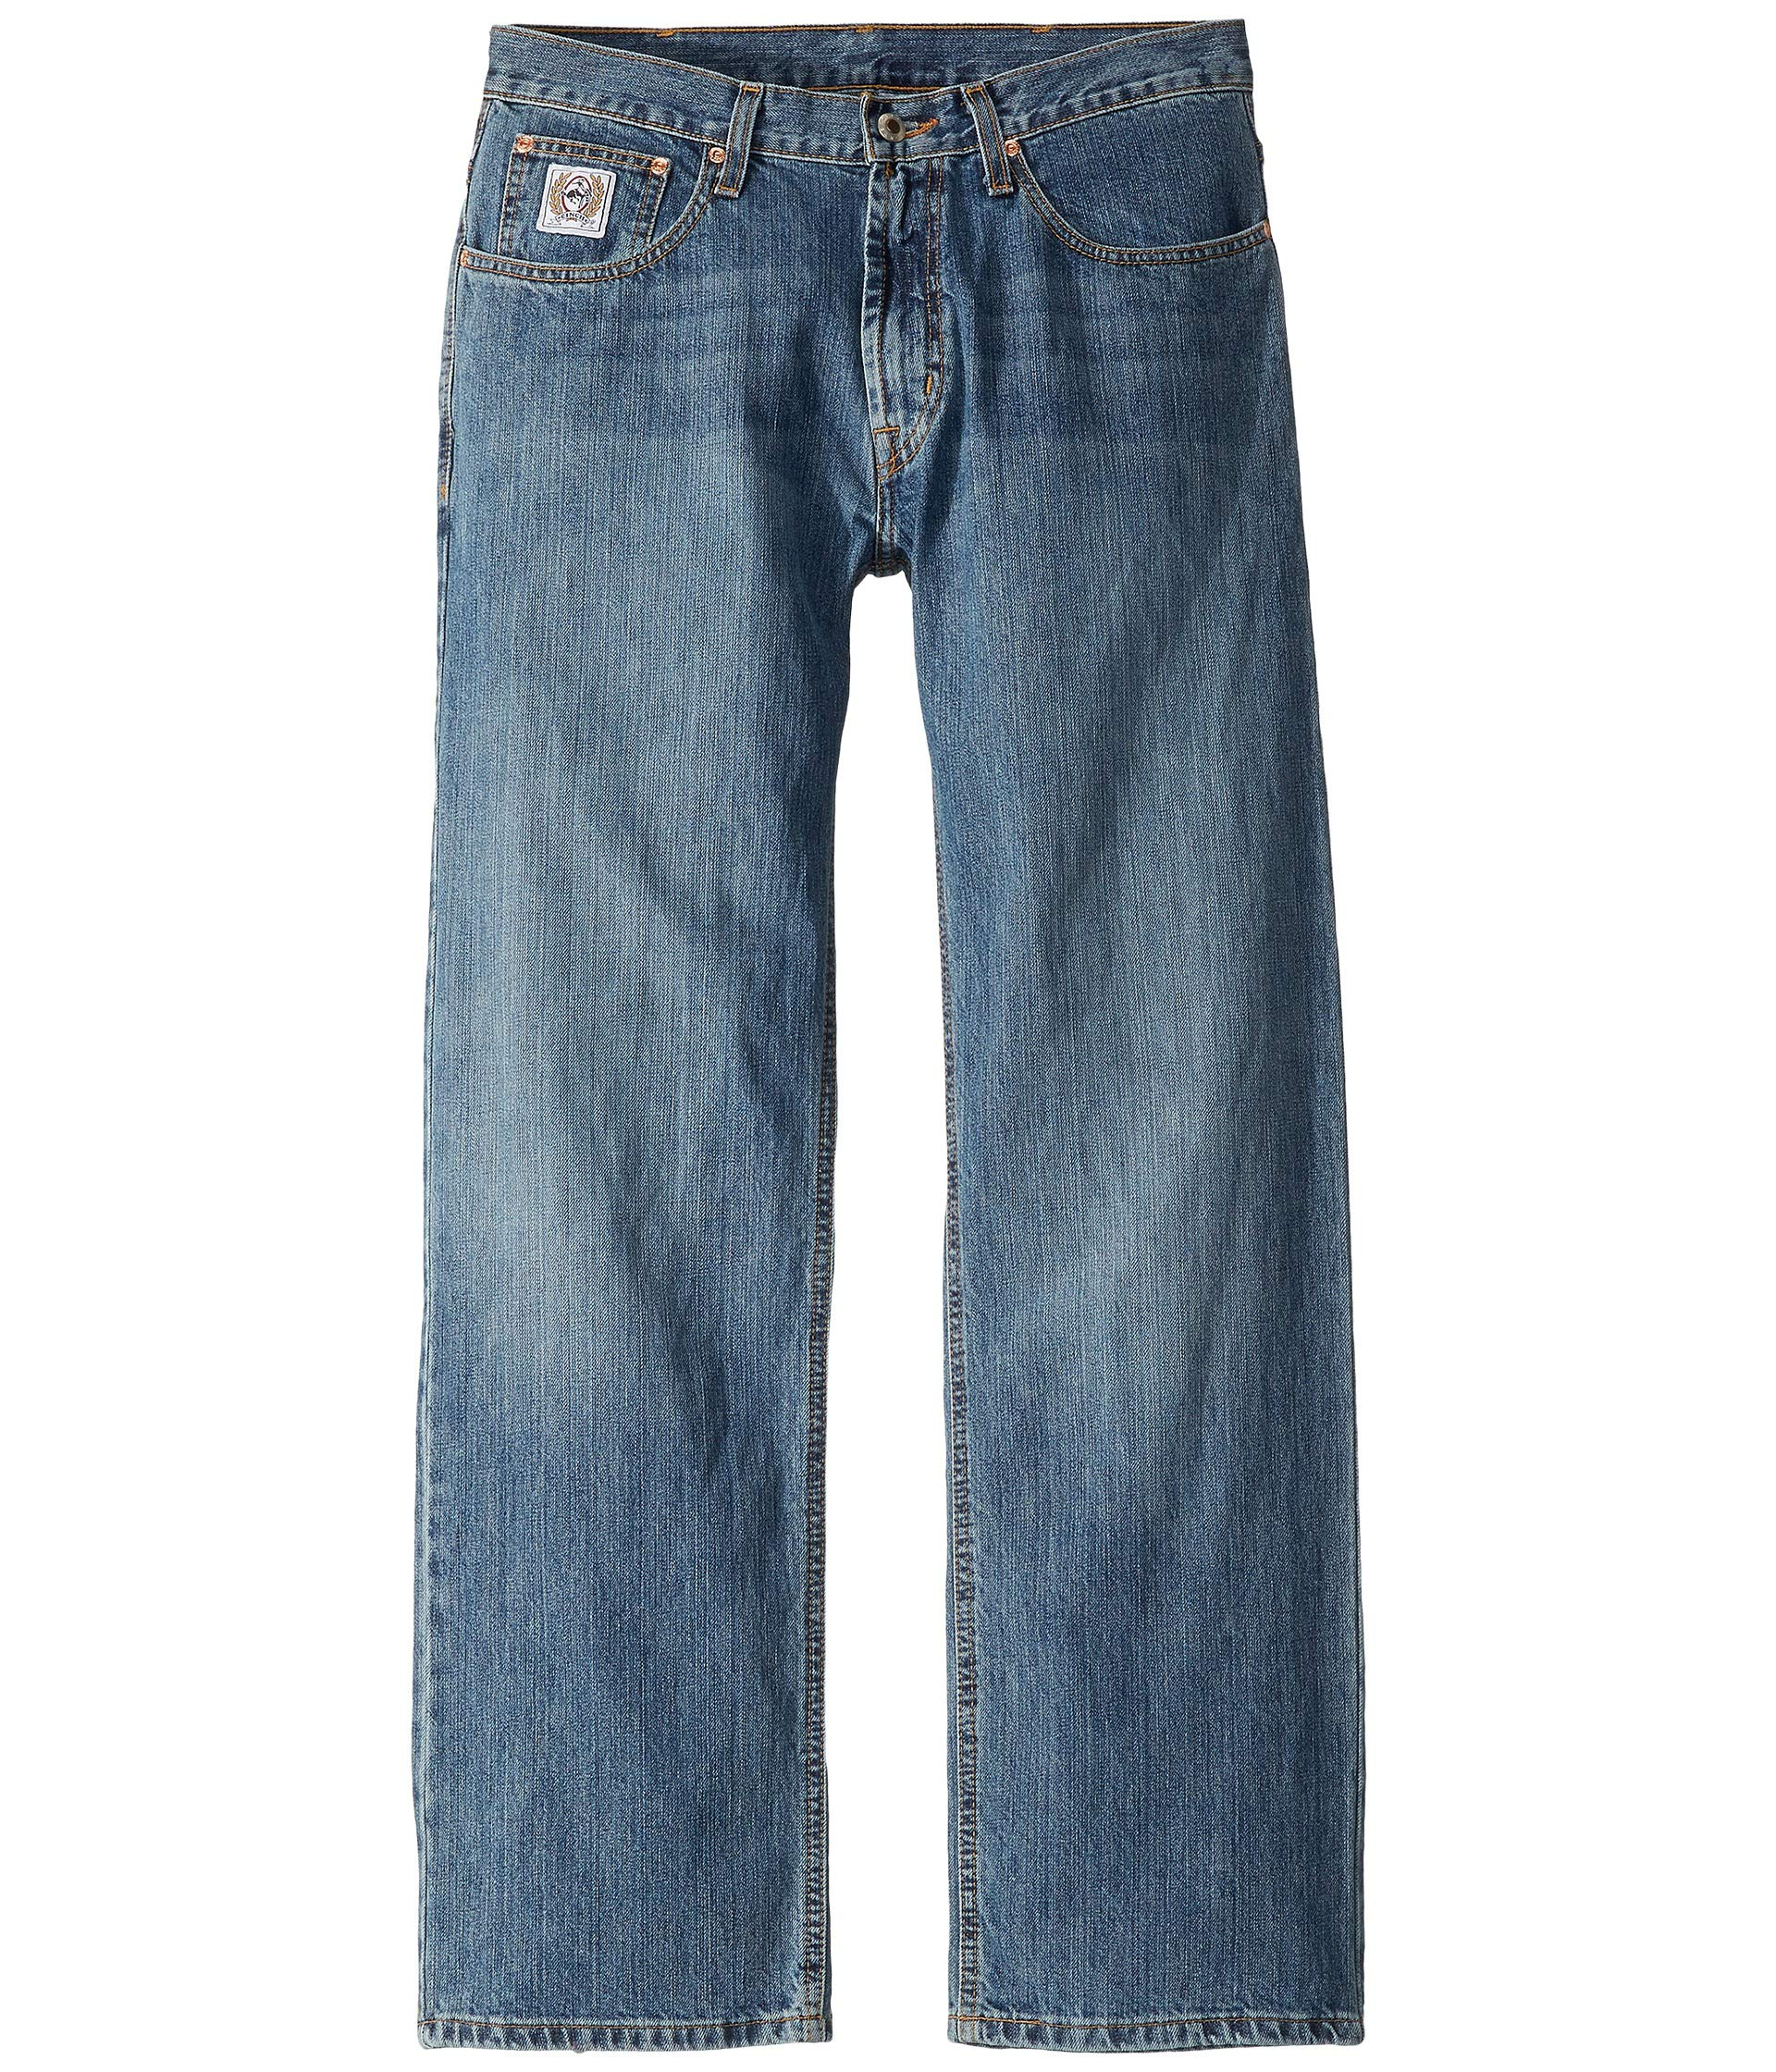 Cinch Apparel Mens White Label Mid Rise Light Stonewash Sandblasted Jeans 35x36 Light Stone Wash